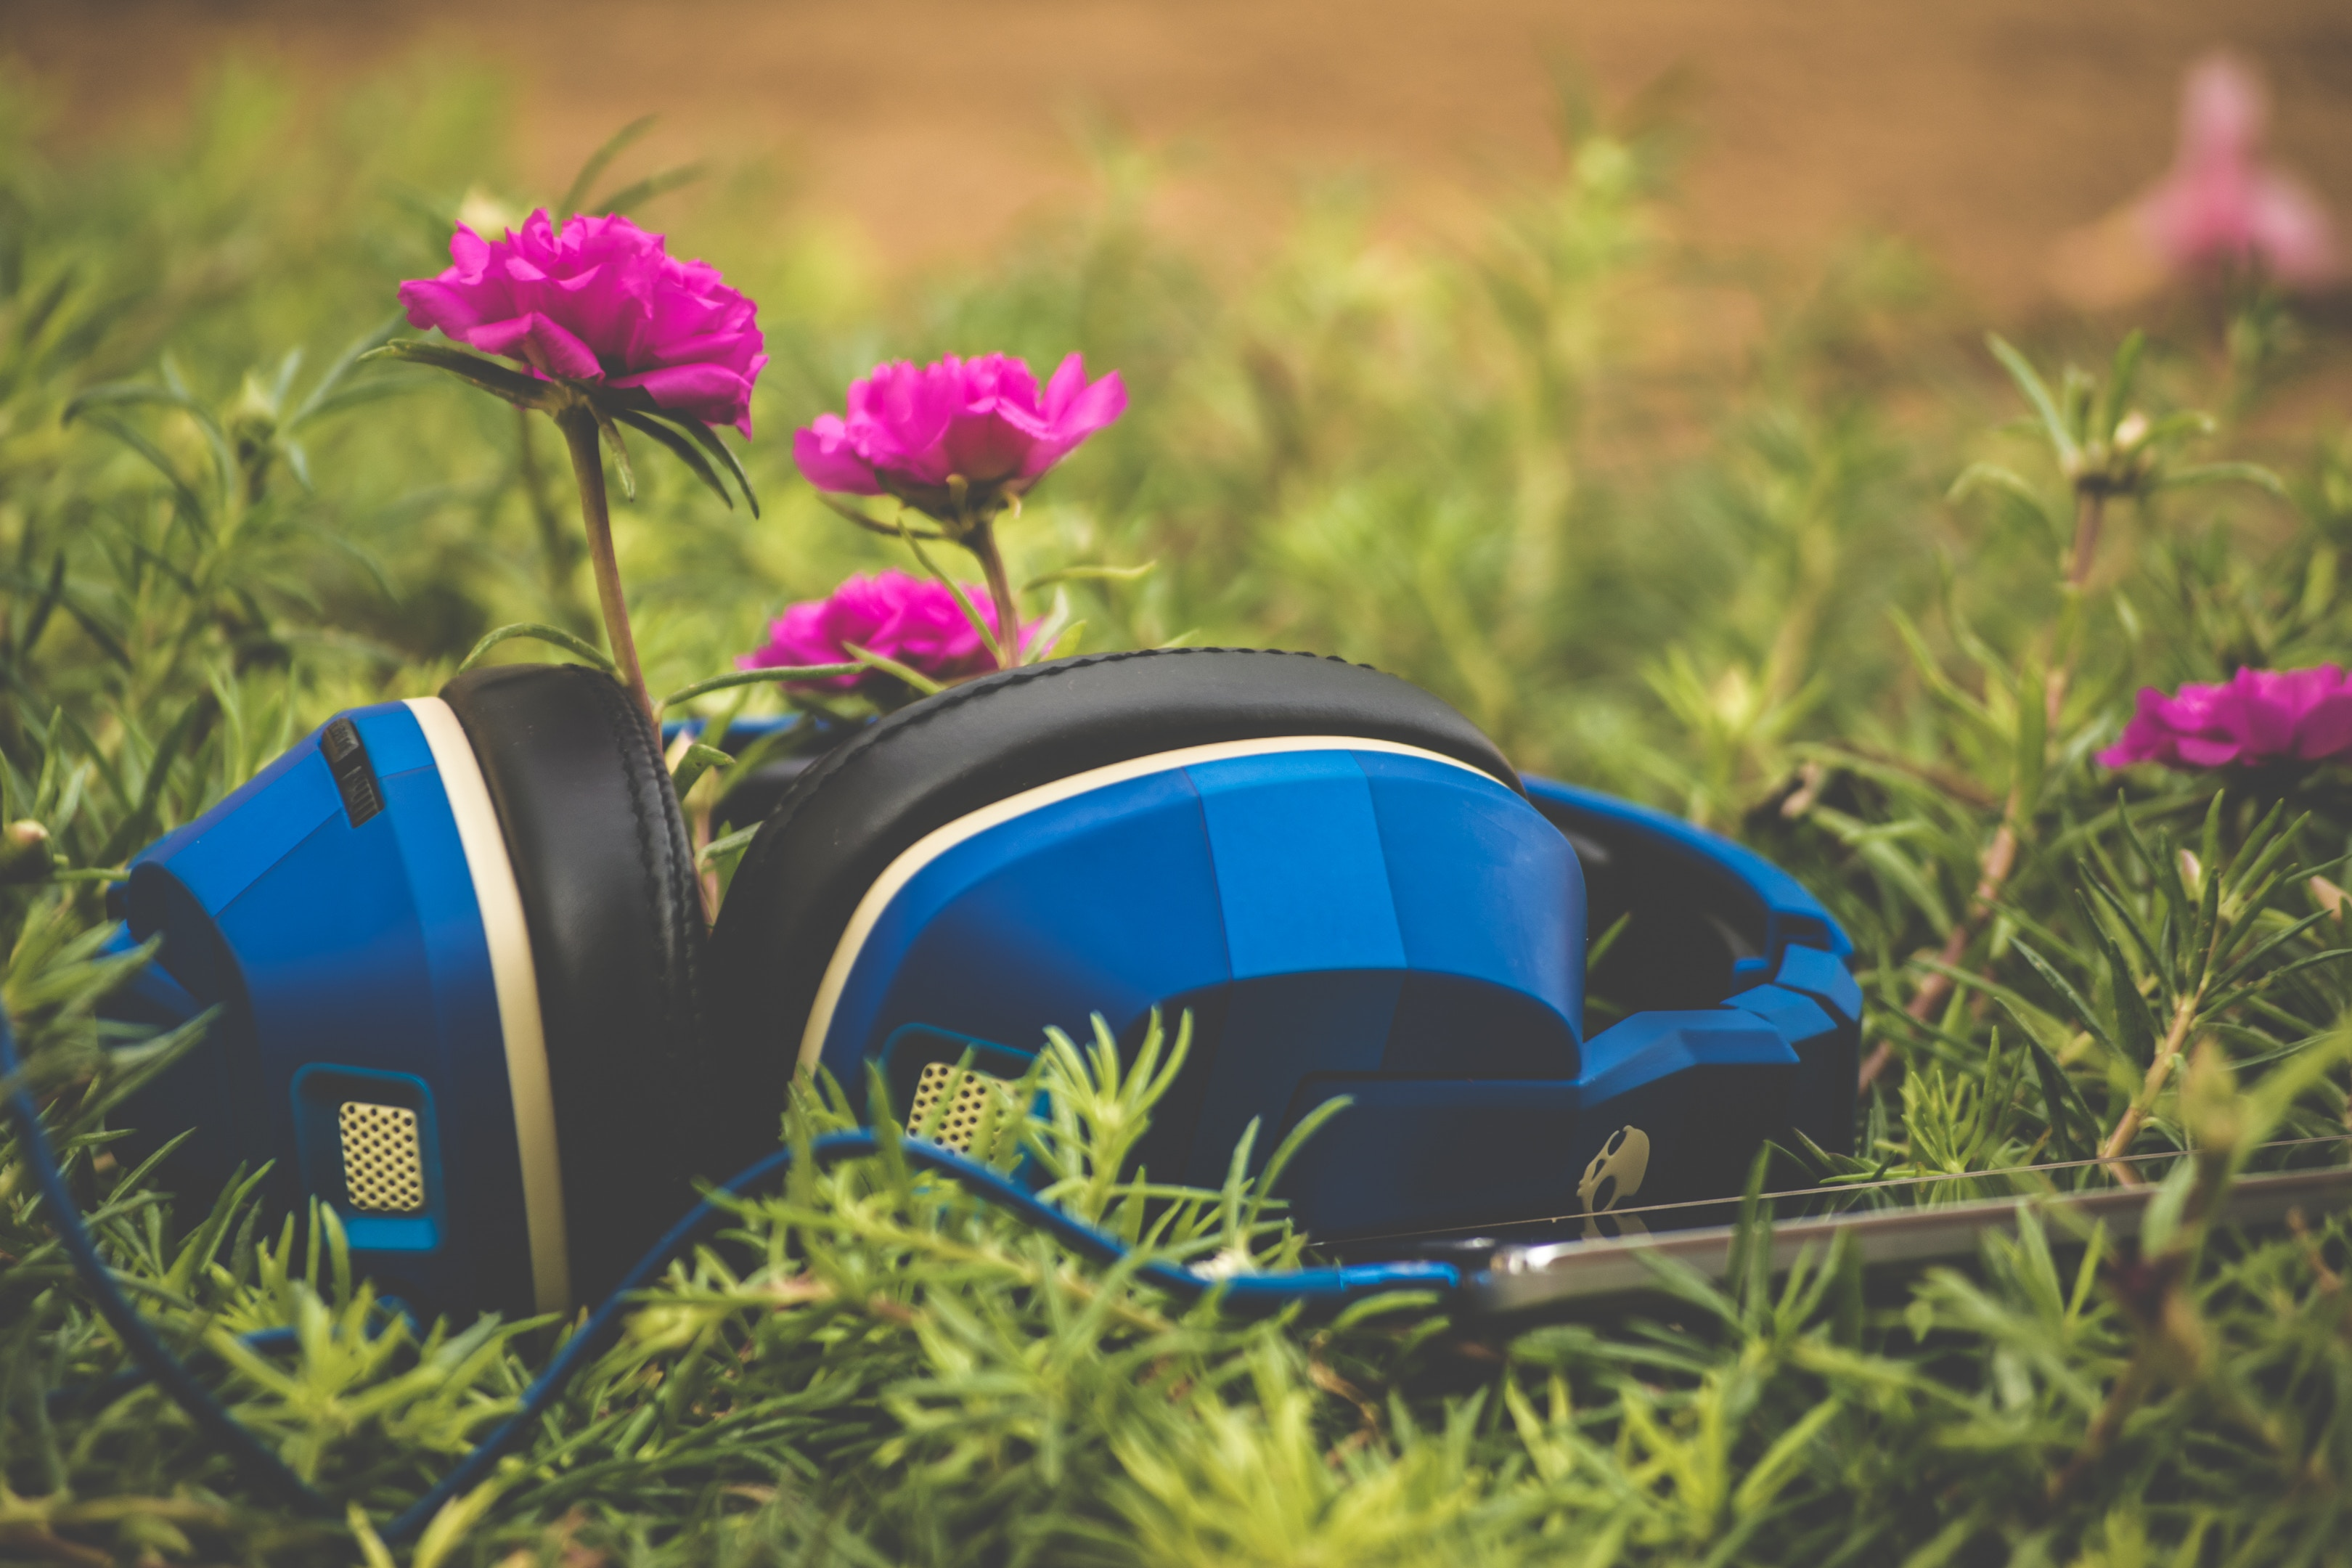 headphones and pink flowers